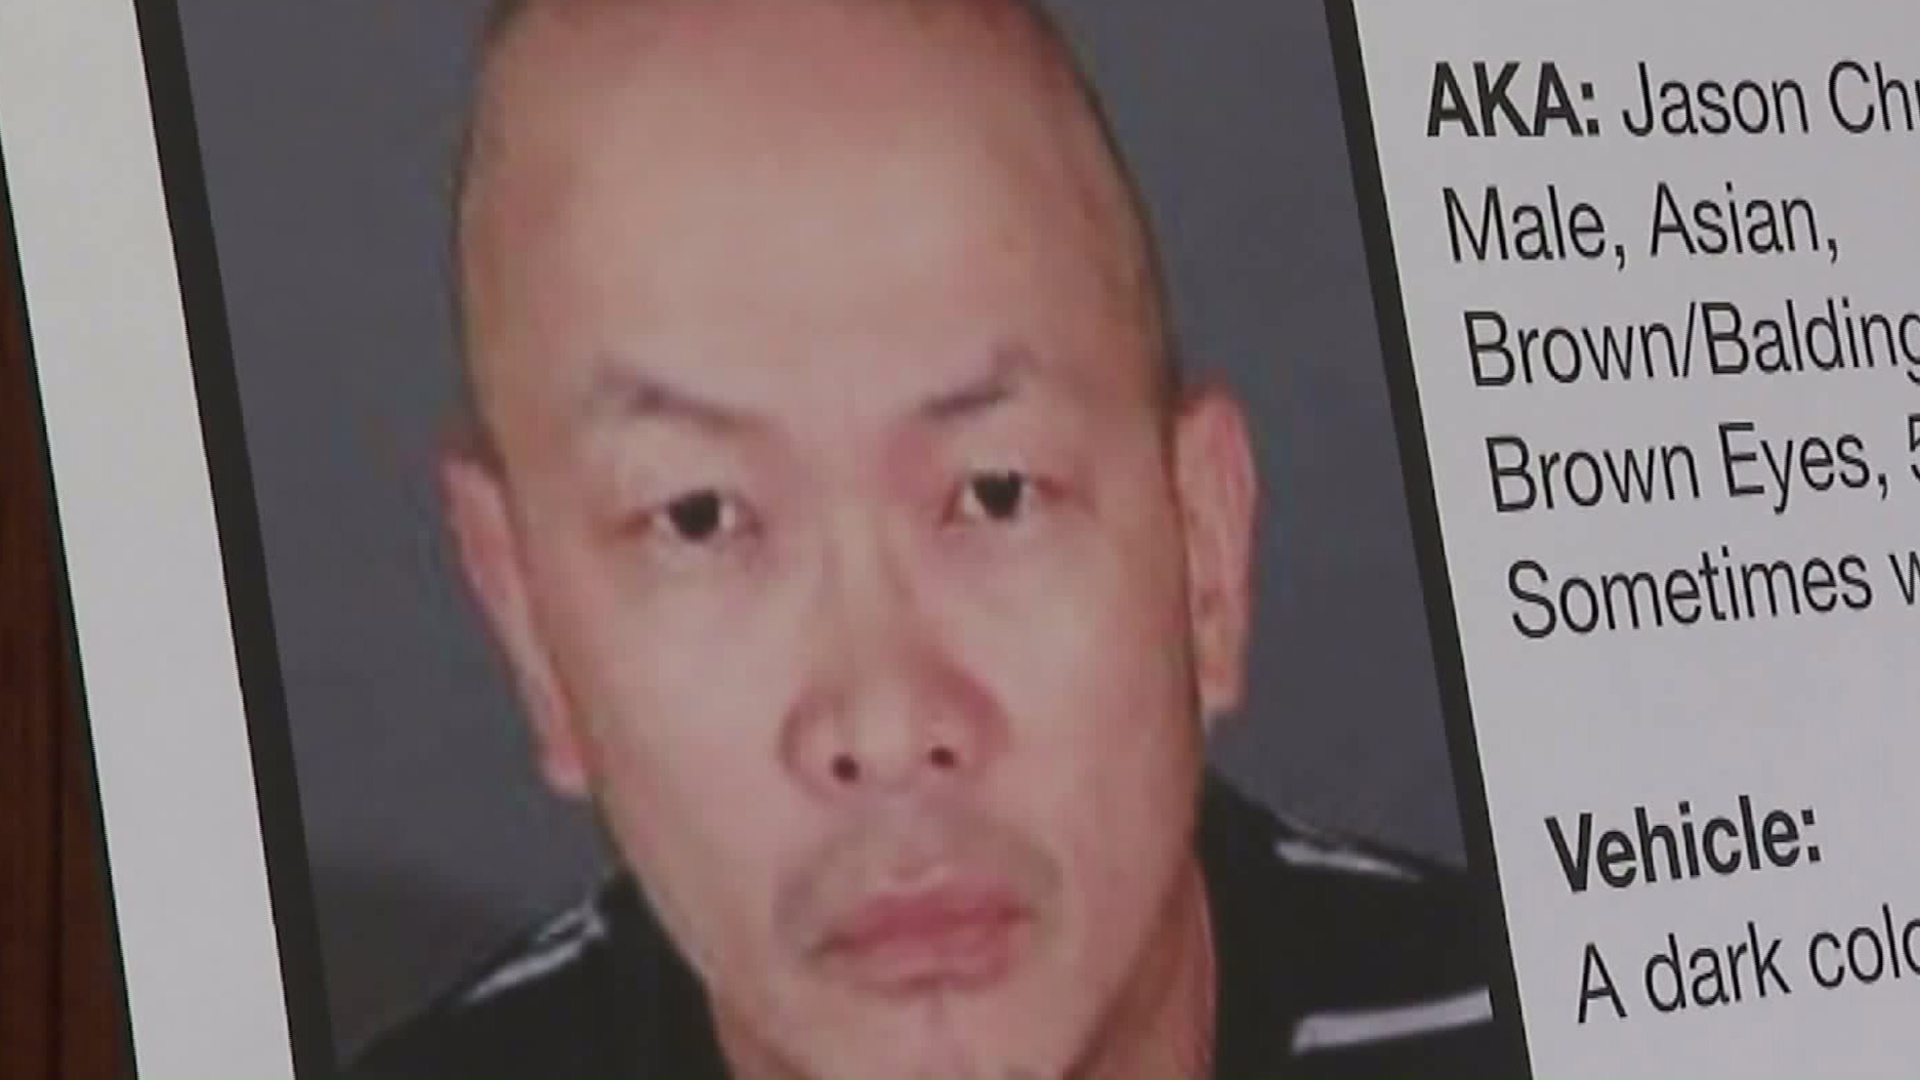 Jason Yu is seen on a poster at an L.A. County Sheriff's Department news event on June 6, 2017. (Credit: KTLA)